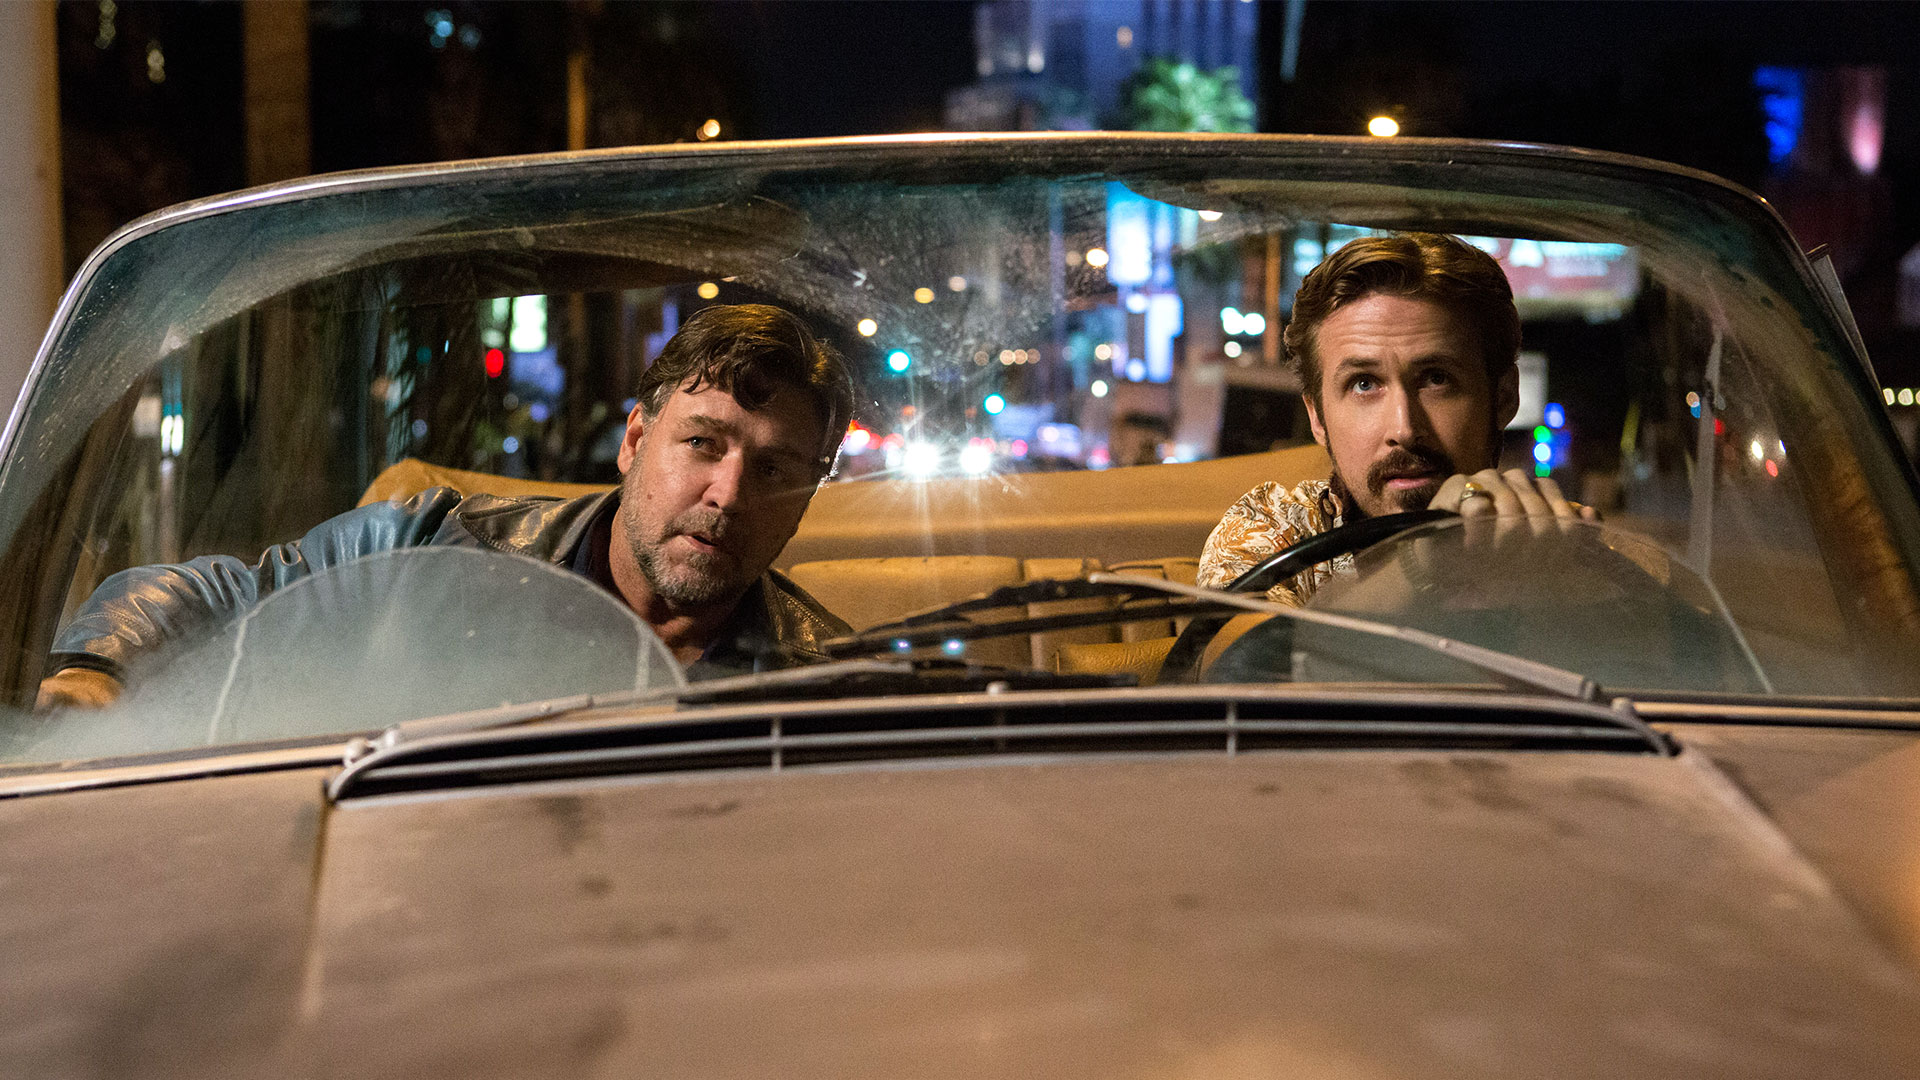 """The Nice Guys"" movie review by Lucas Mirabella"